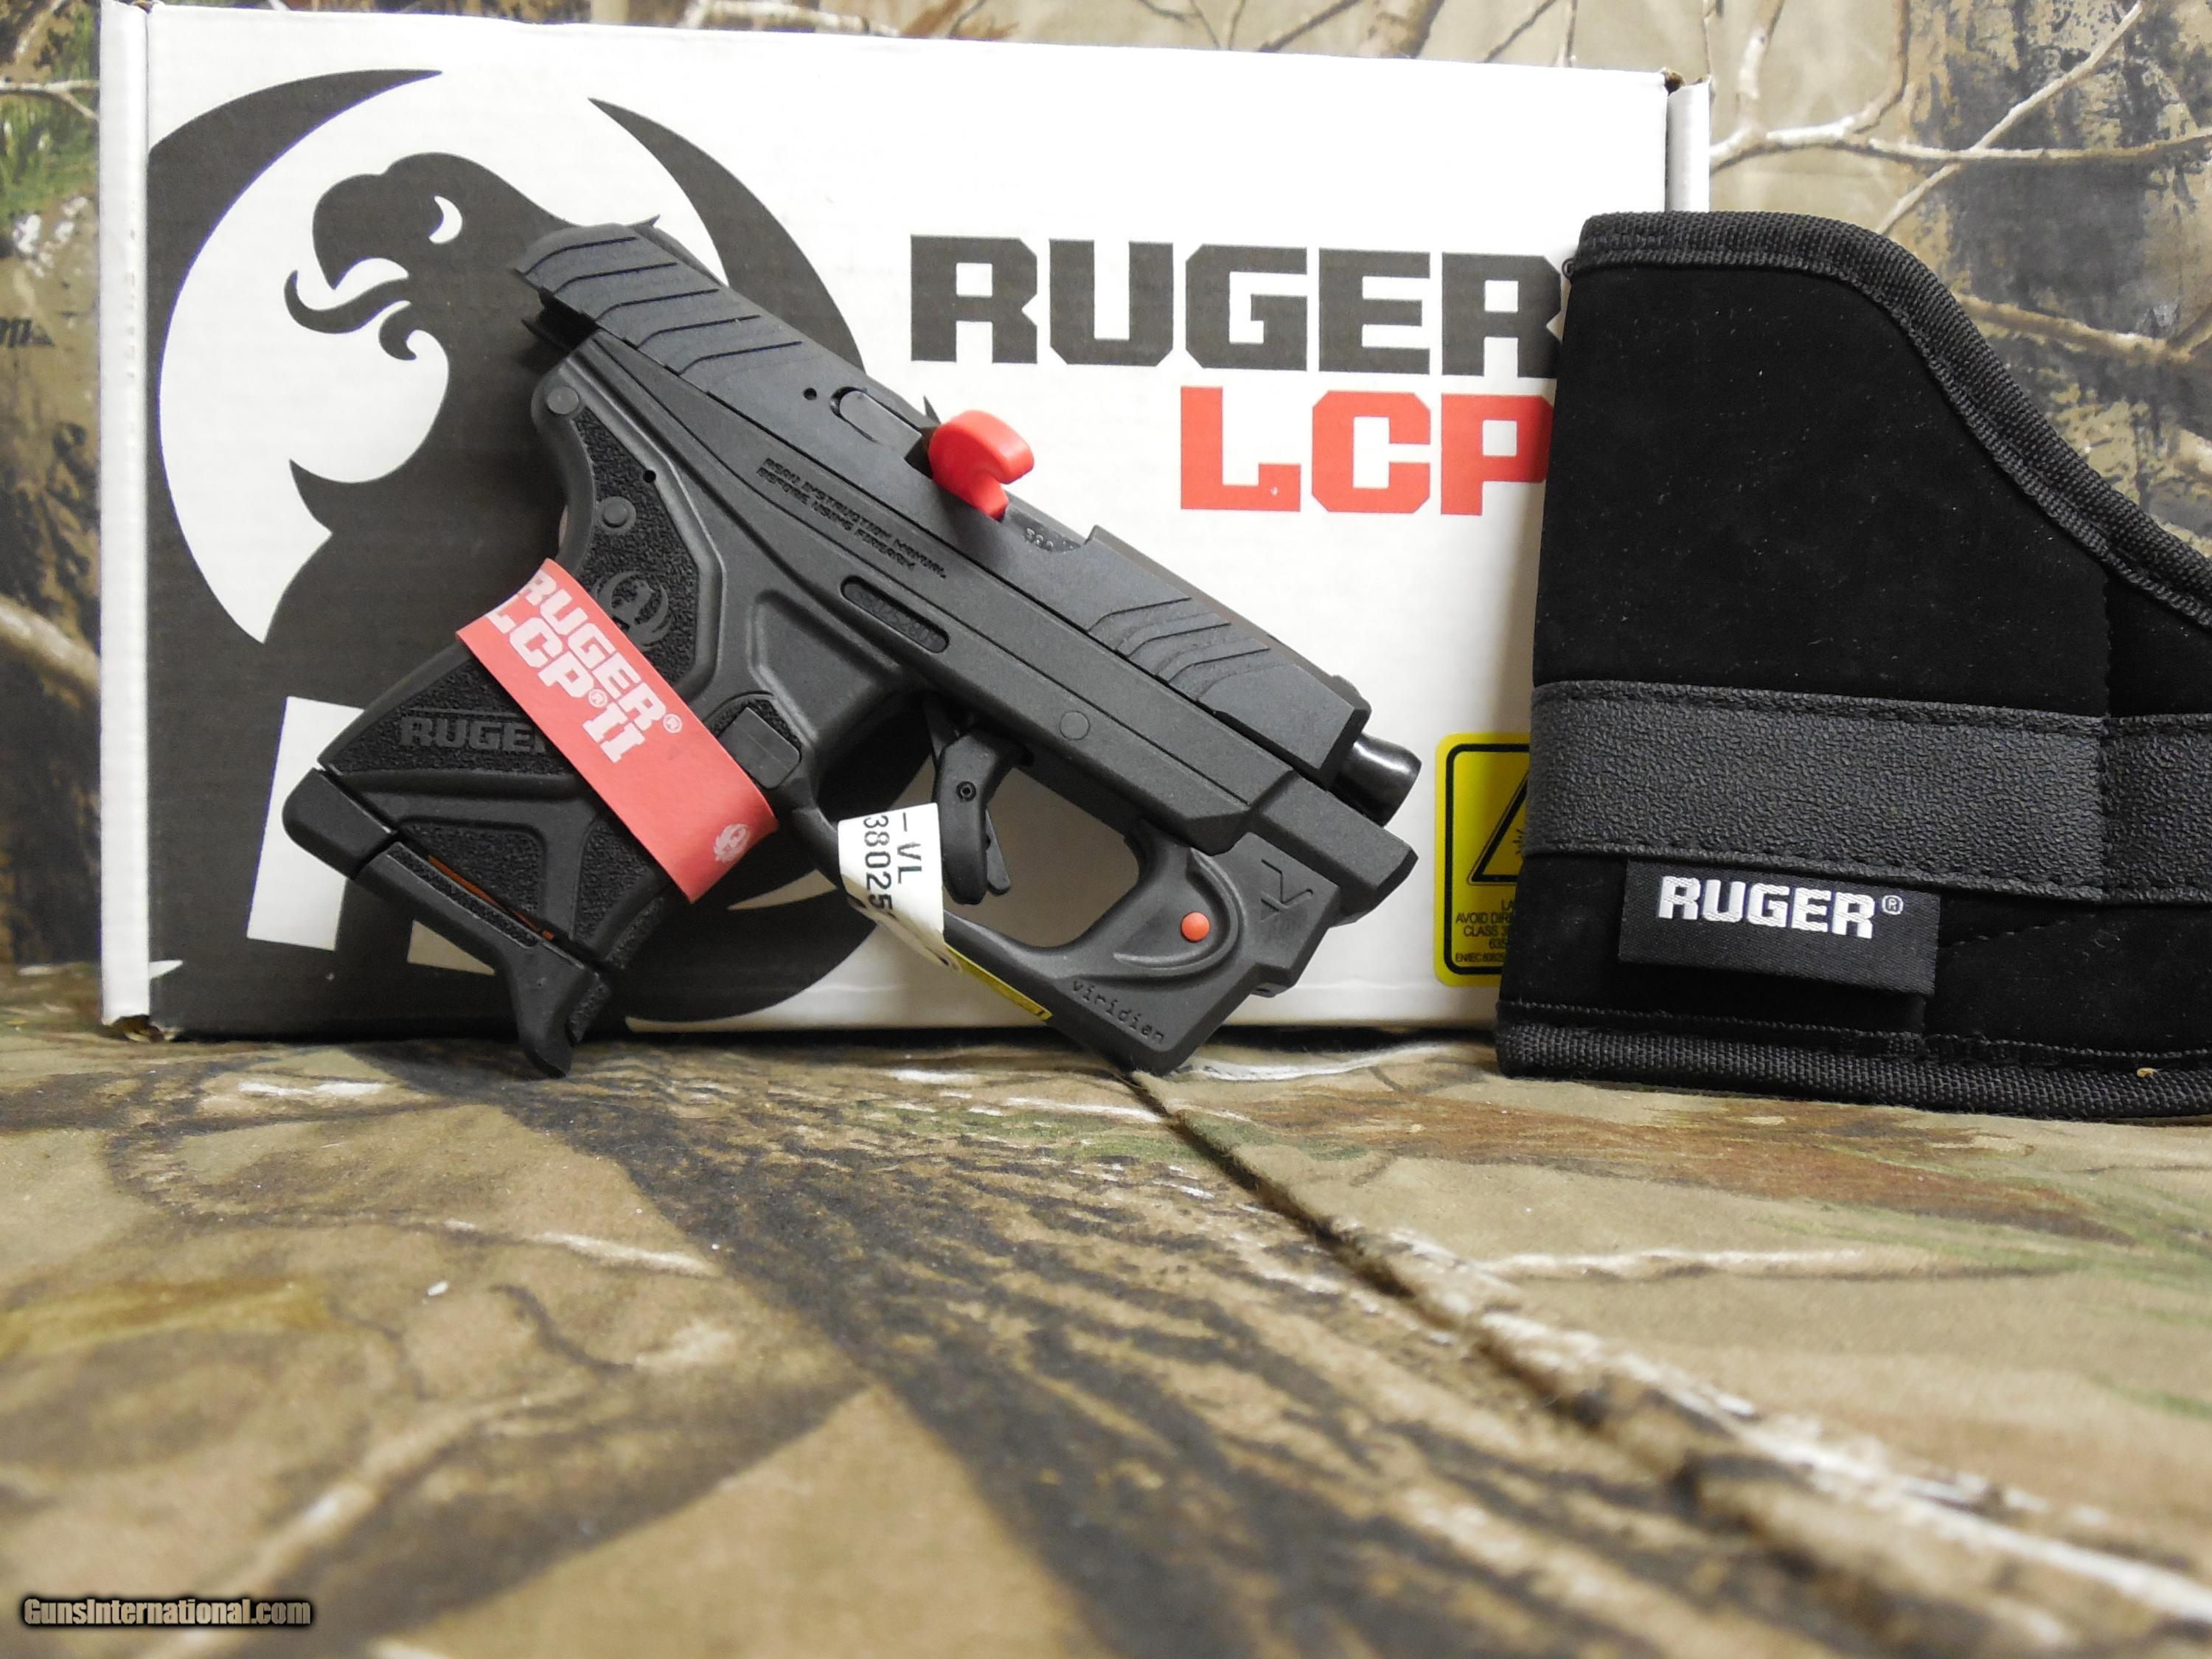 RUGER LCP-II WITH VIRIDIAN LASER, 380 ACP, 6 ROUND MAGAZINE, COMES